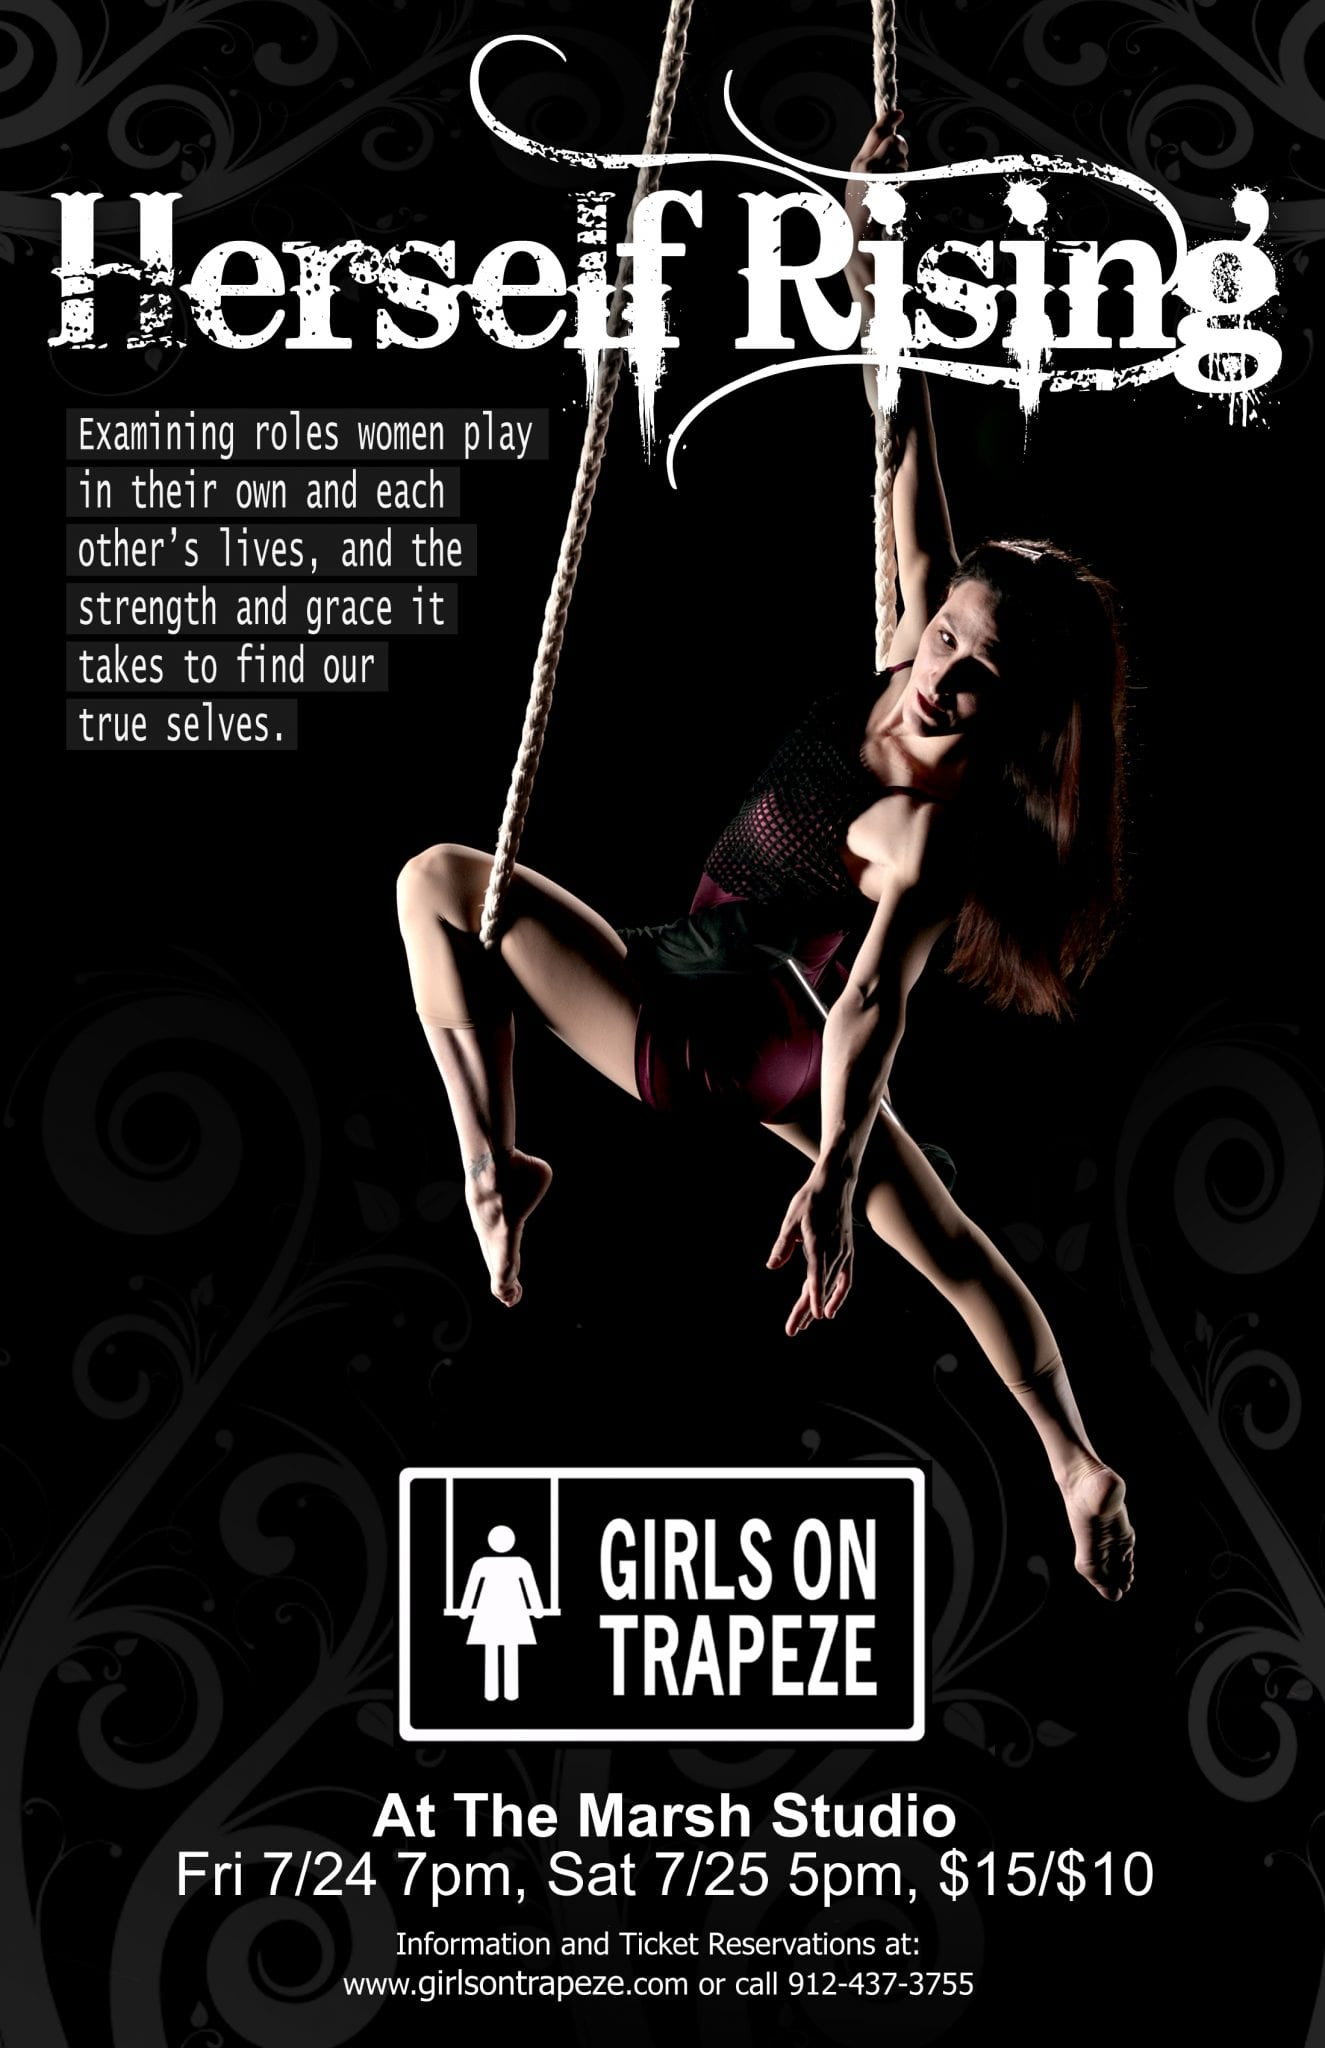 Girls On Trapeze at The Marsh Studio